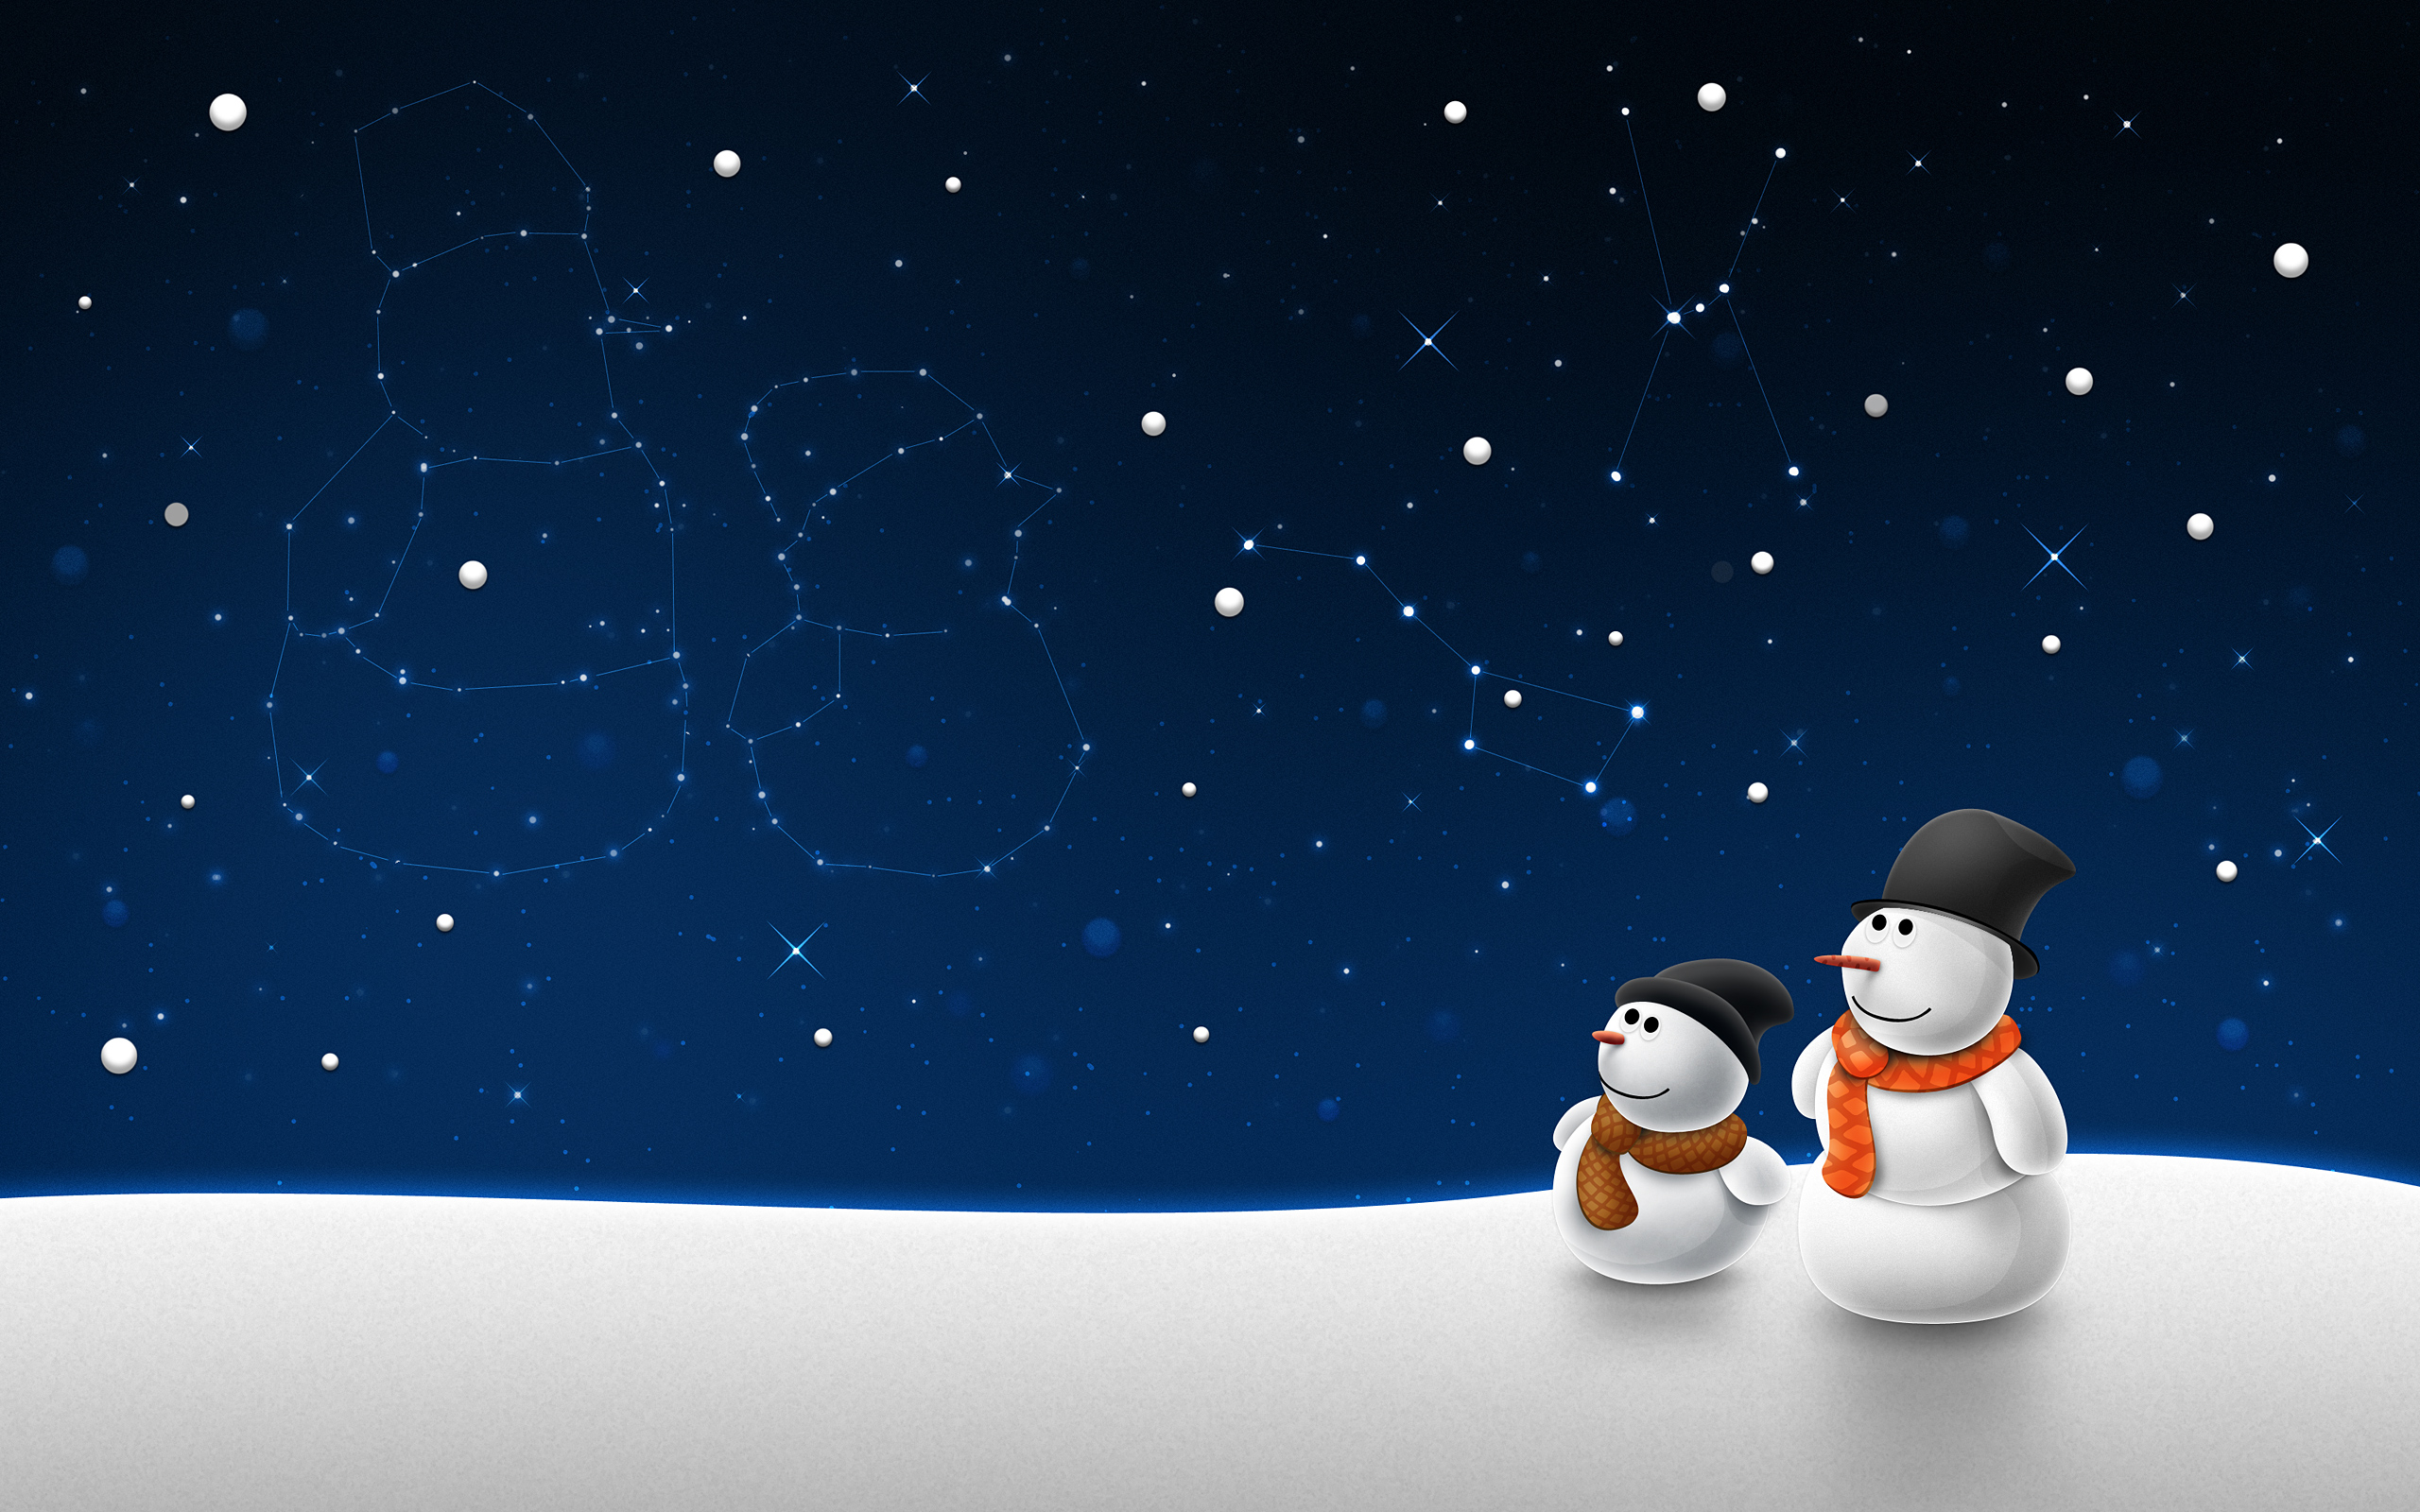 Wallpaper winter snowman stars constellations wallpapers new year 2560x1600